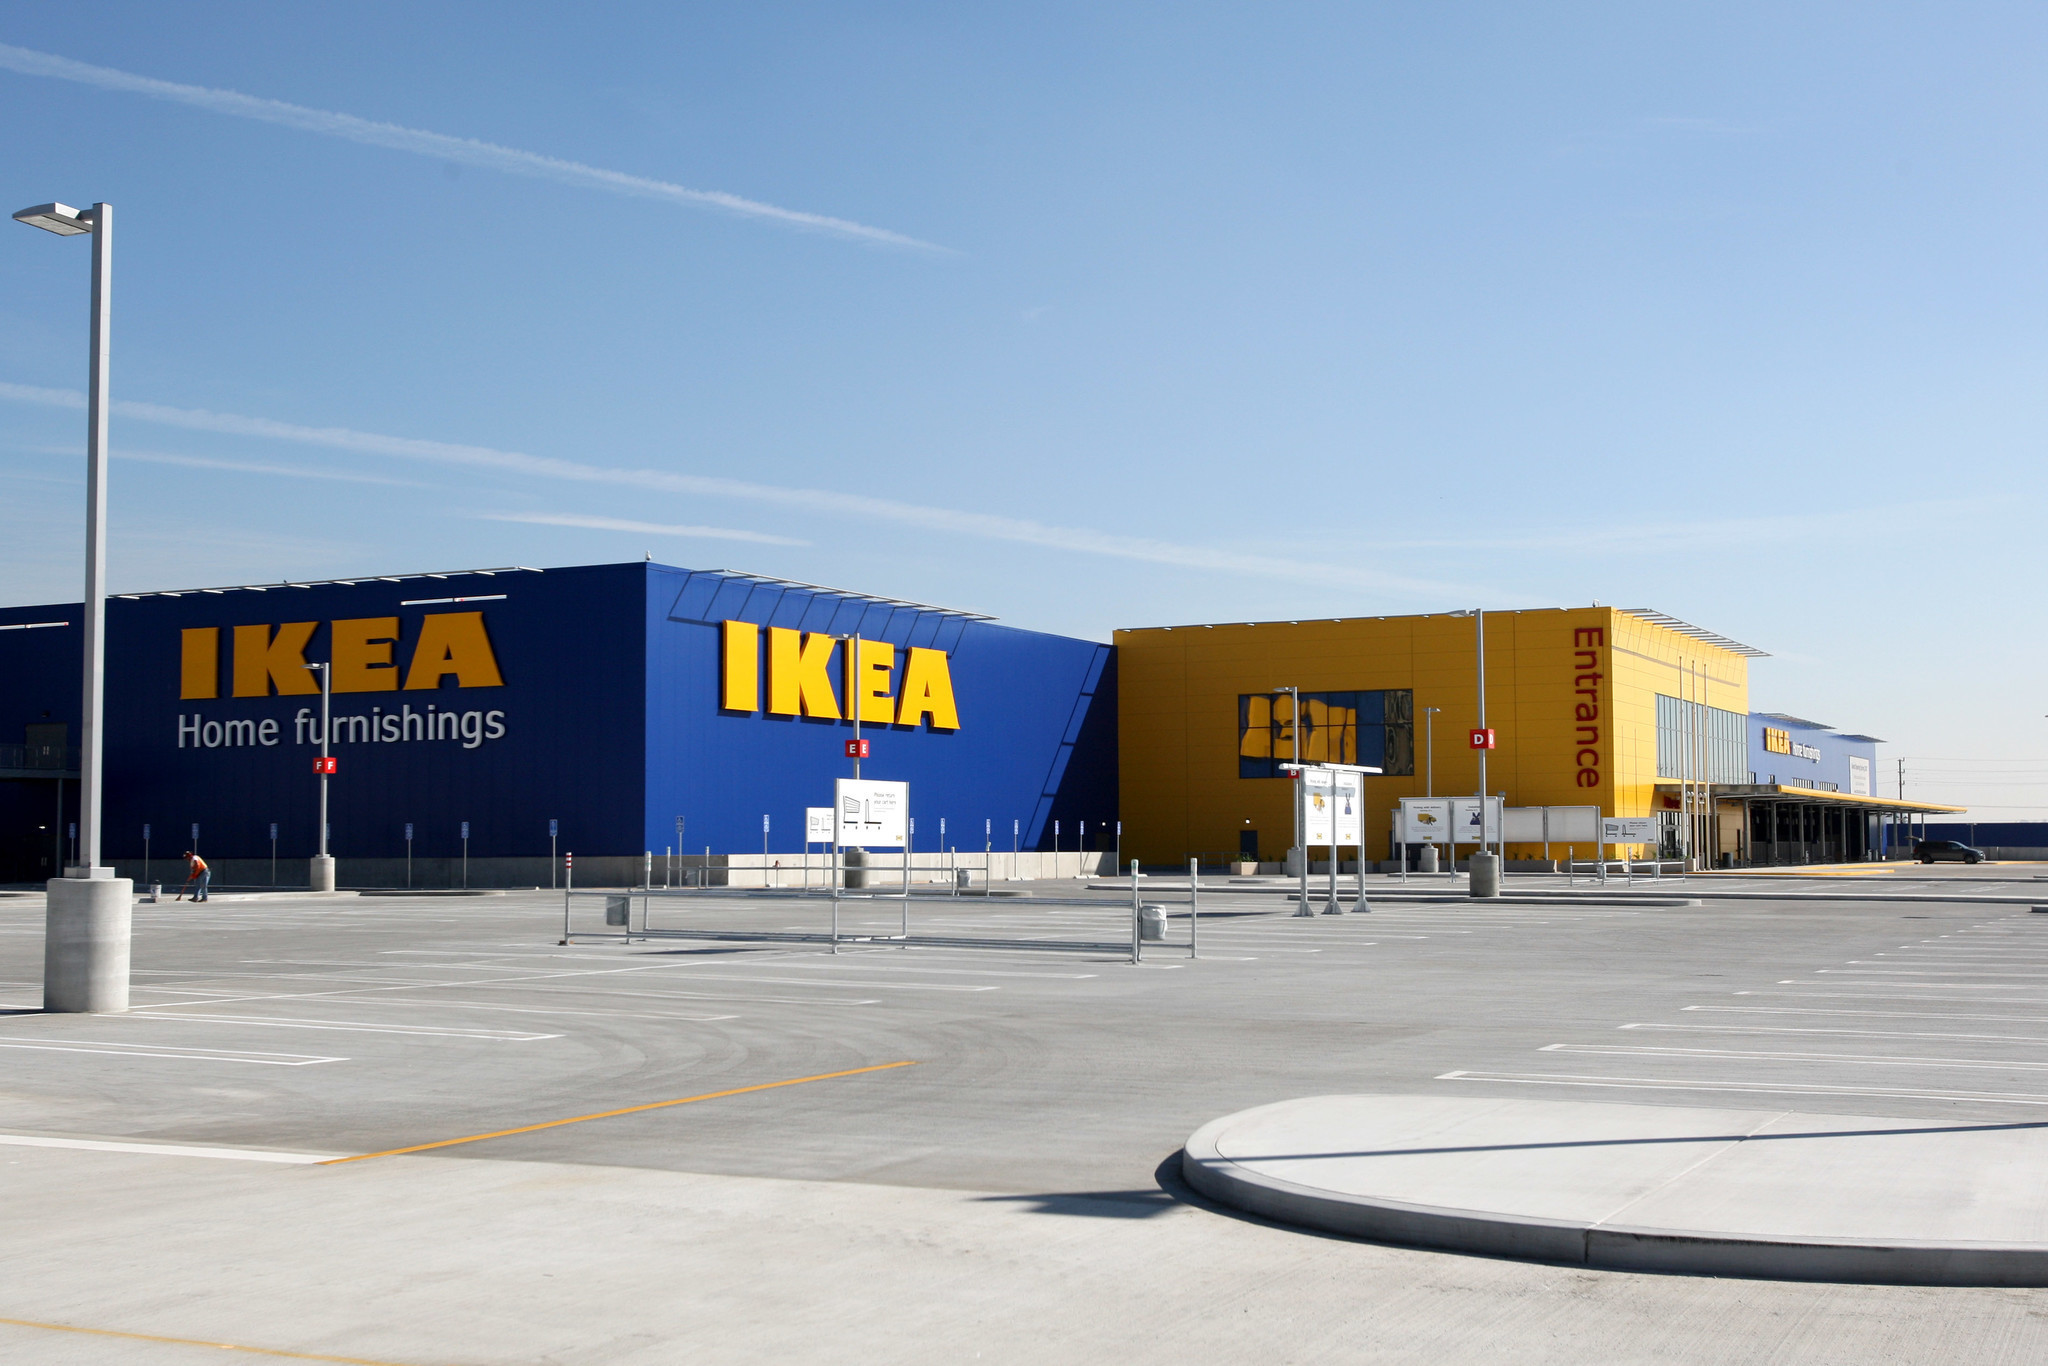 ikea readies to open its largest store in america burbank leader. Black Bedroom Furniture Sets. Home Design Ideas